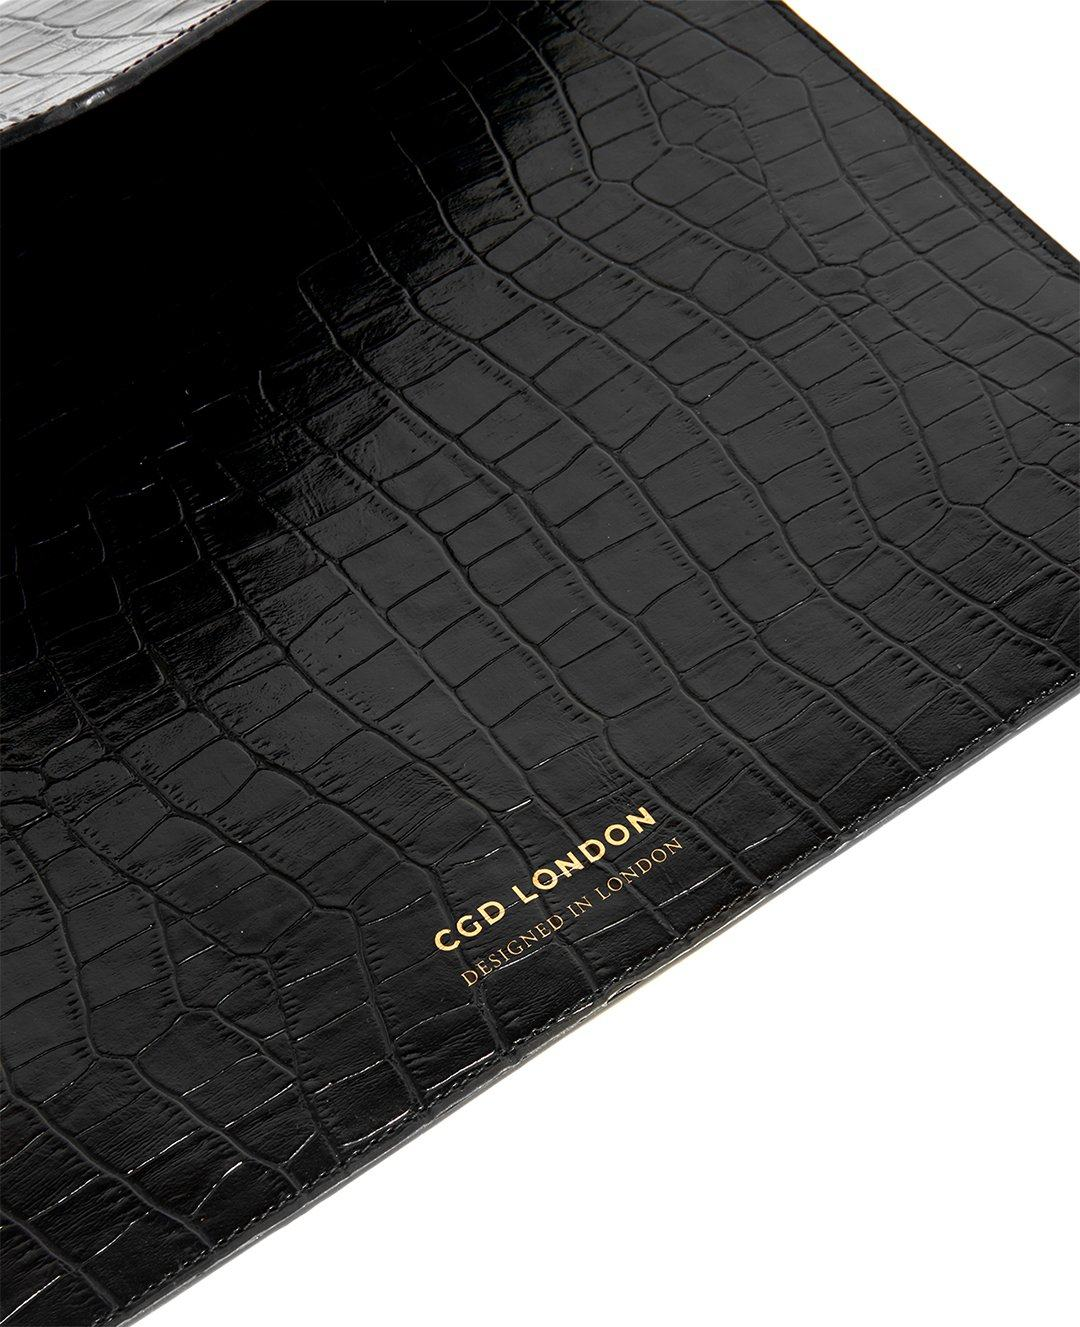 Vegan Leather Laptop Cover - CGD LONDON